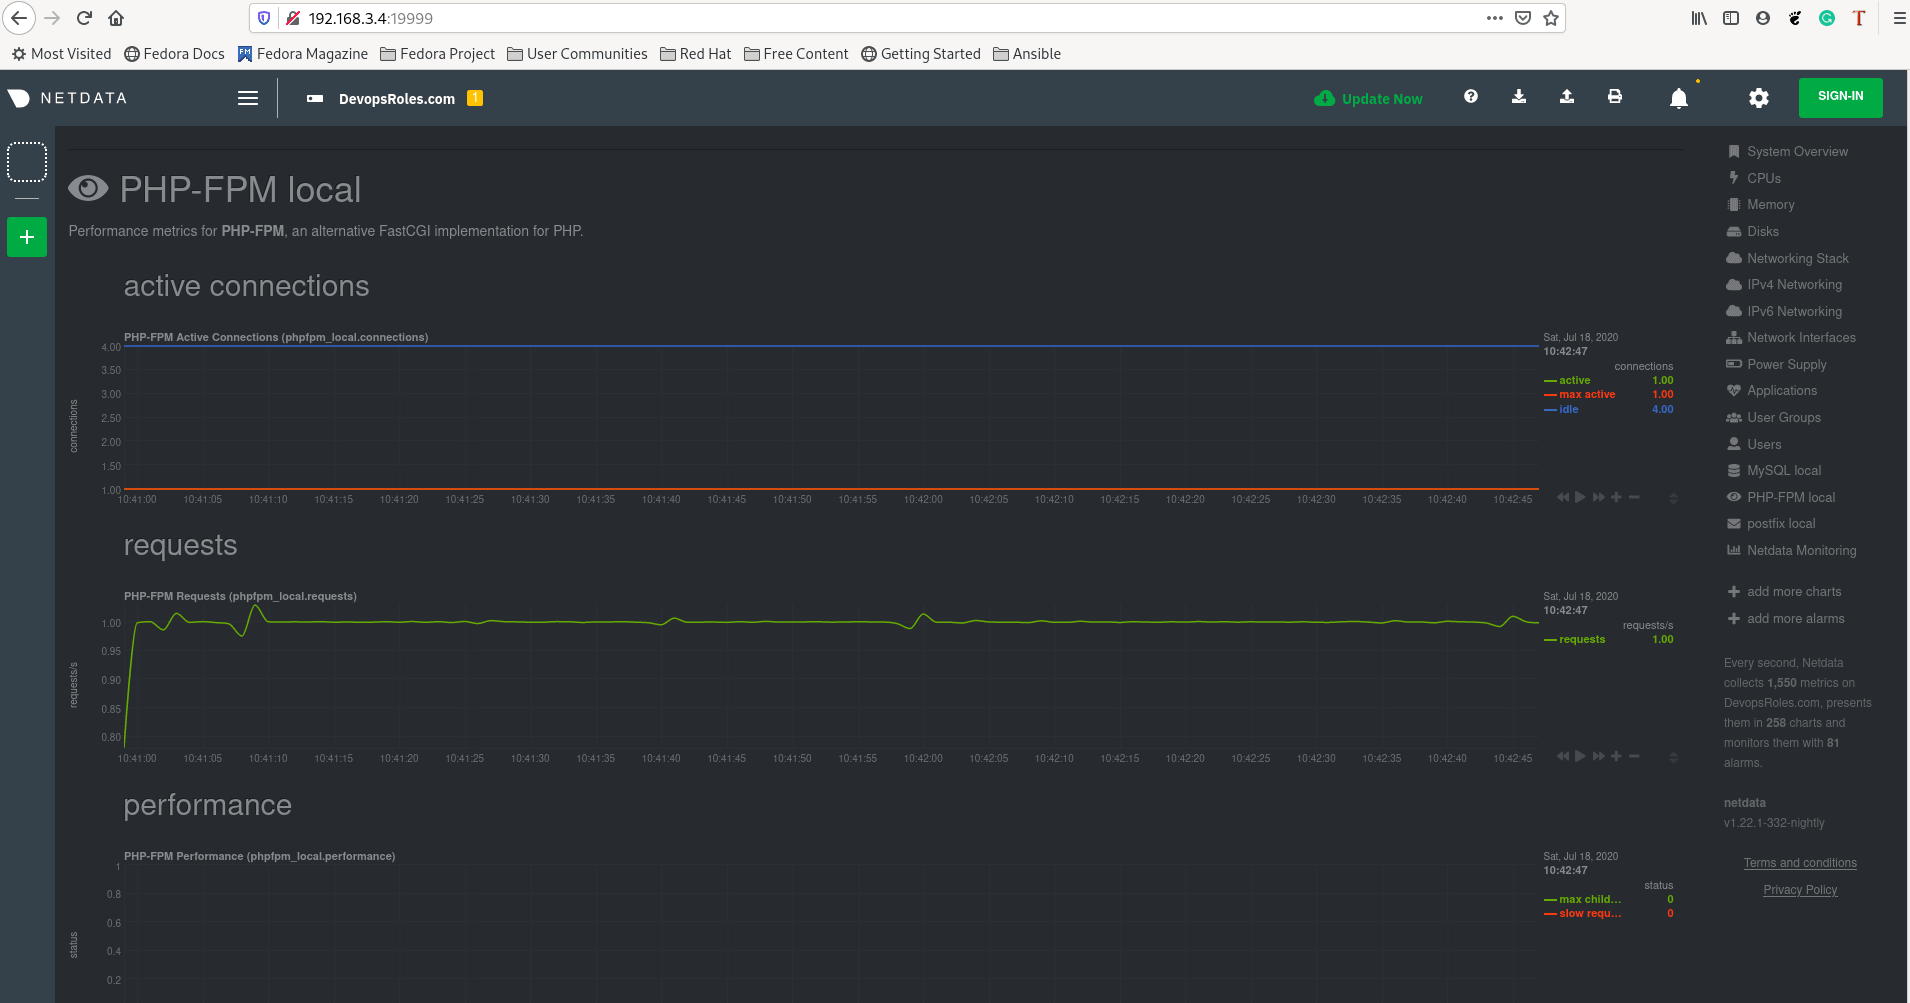 netdata monitor PHP-FPM